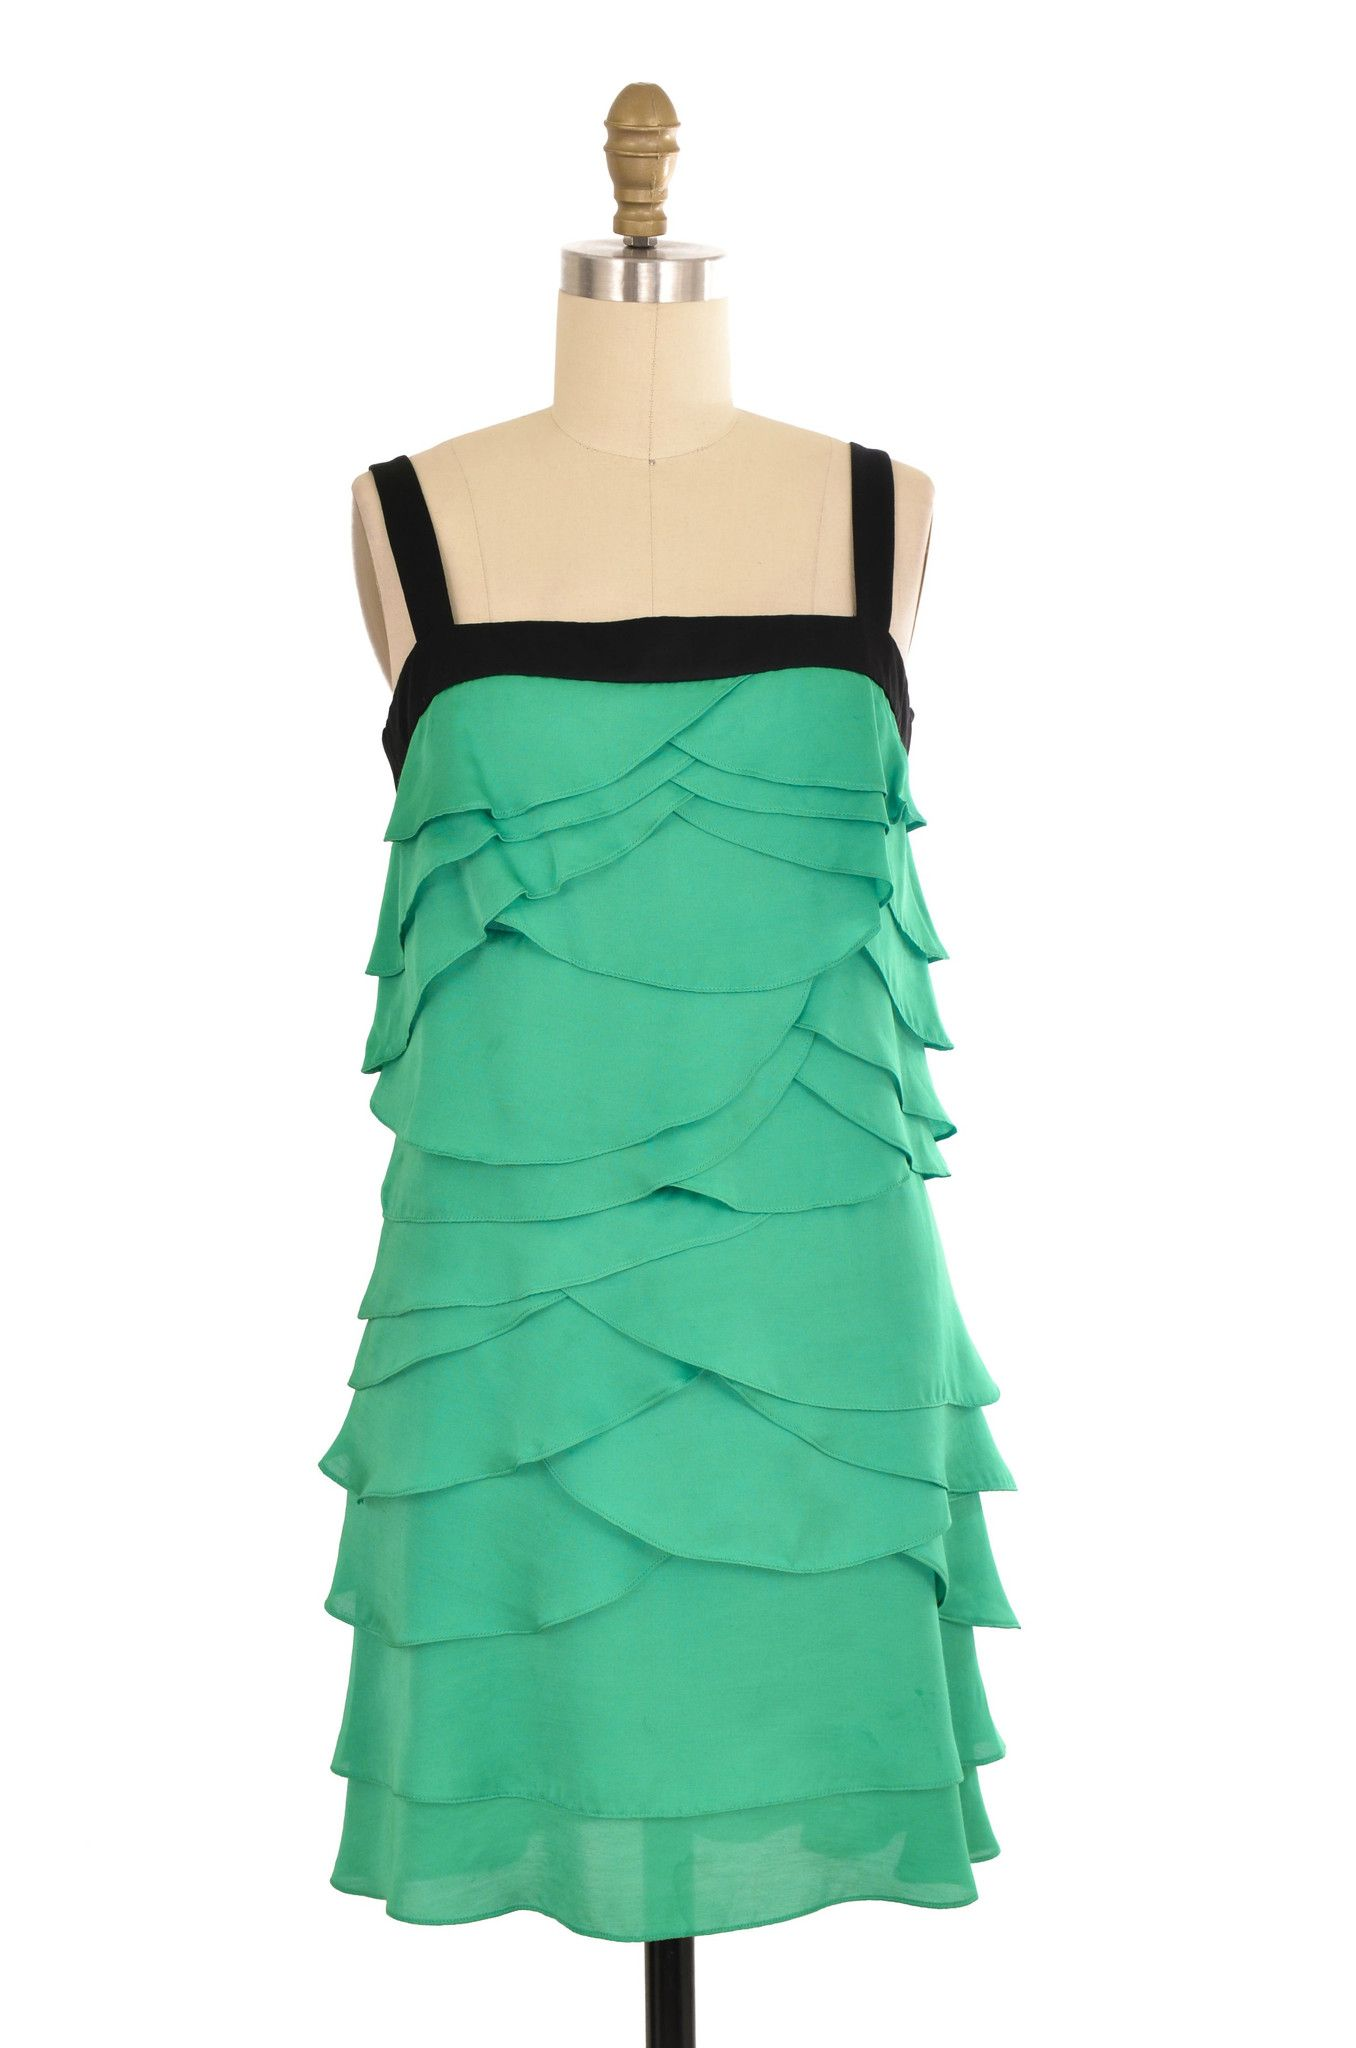 BCBG Max Azria Green Tiered Dress Size 2 | ClosetDash | Let\'s Play ...